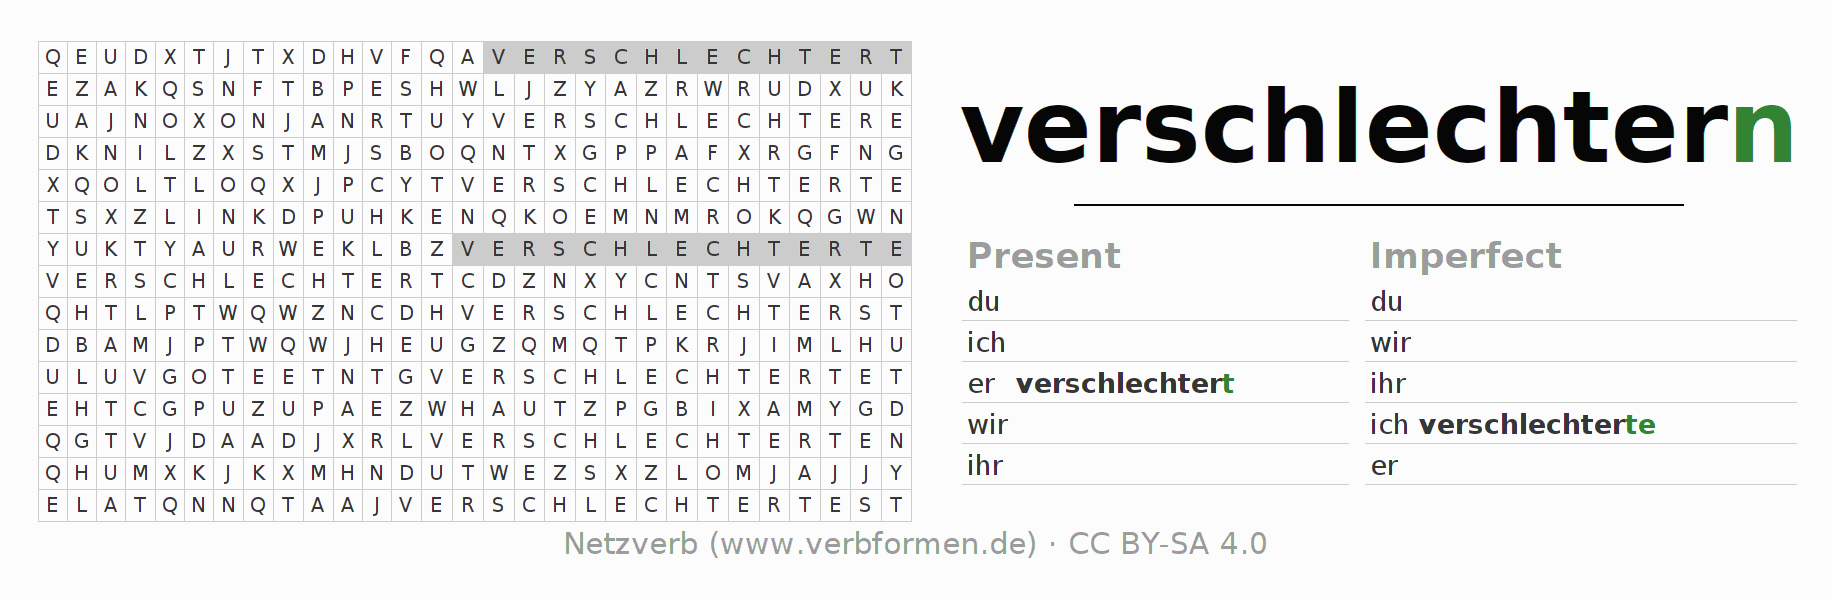 Word search puzzle for the conjugation of the verb verschlechtern